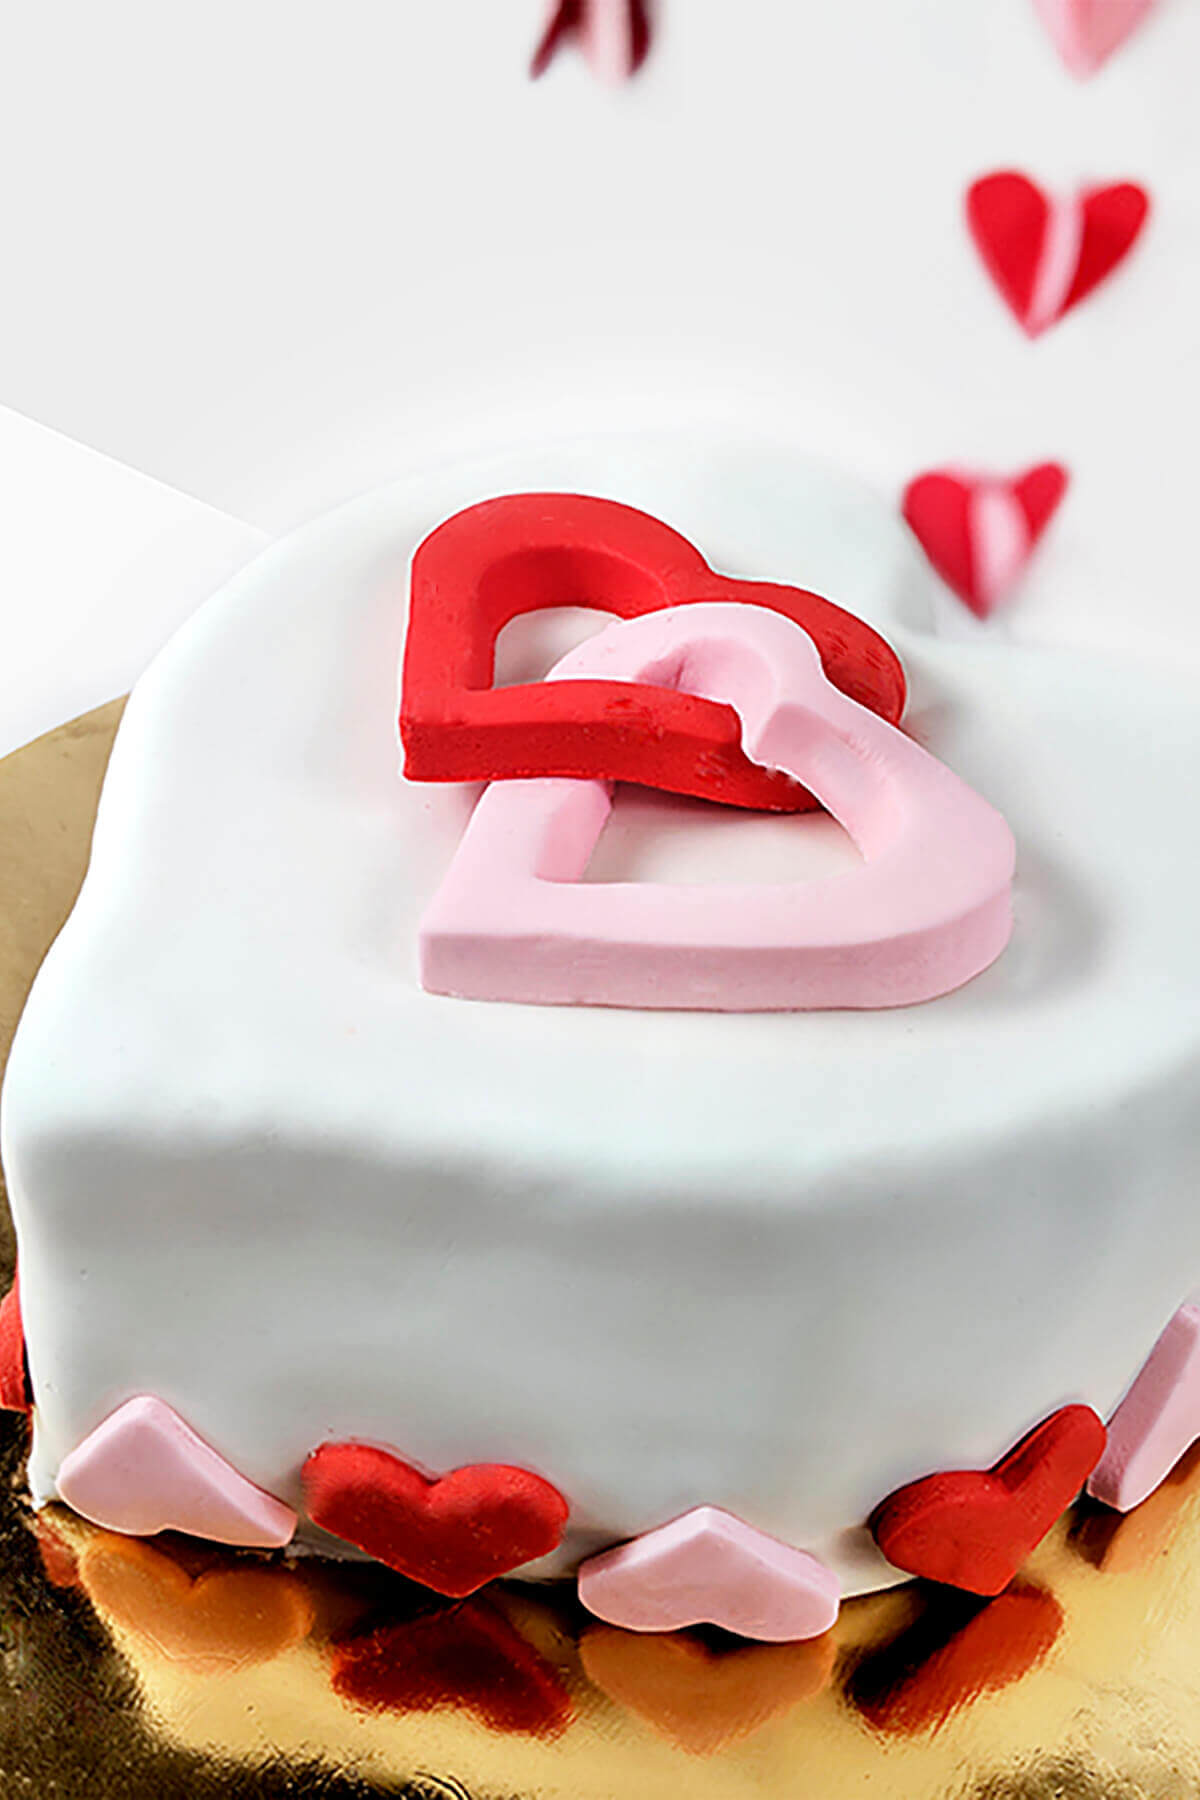 Heart Themed Diy Cake Decorating Kit For Kids And Adult